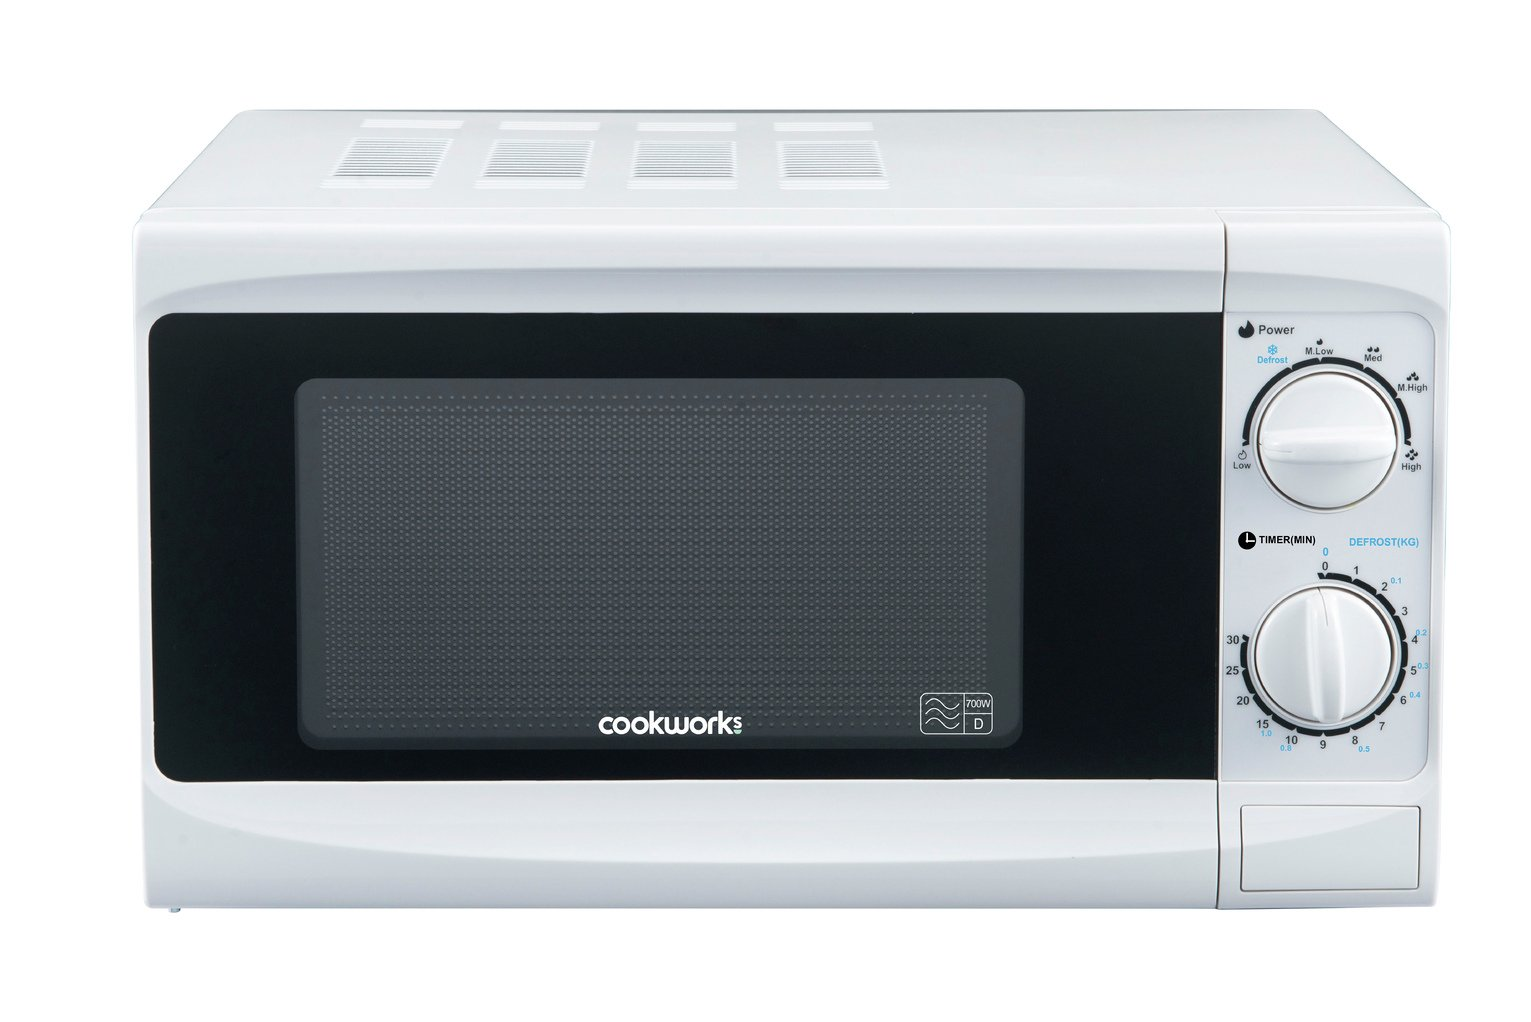 Cookworks 700W Standard Microwave MM7 - White